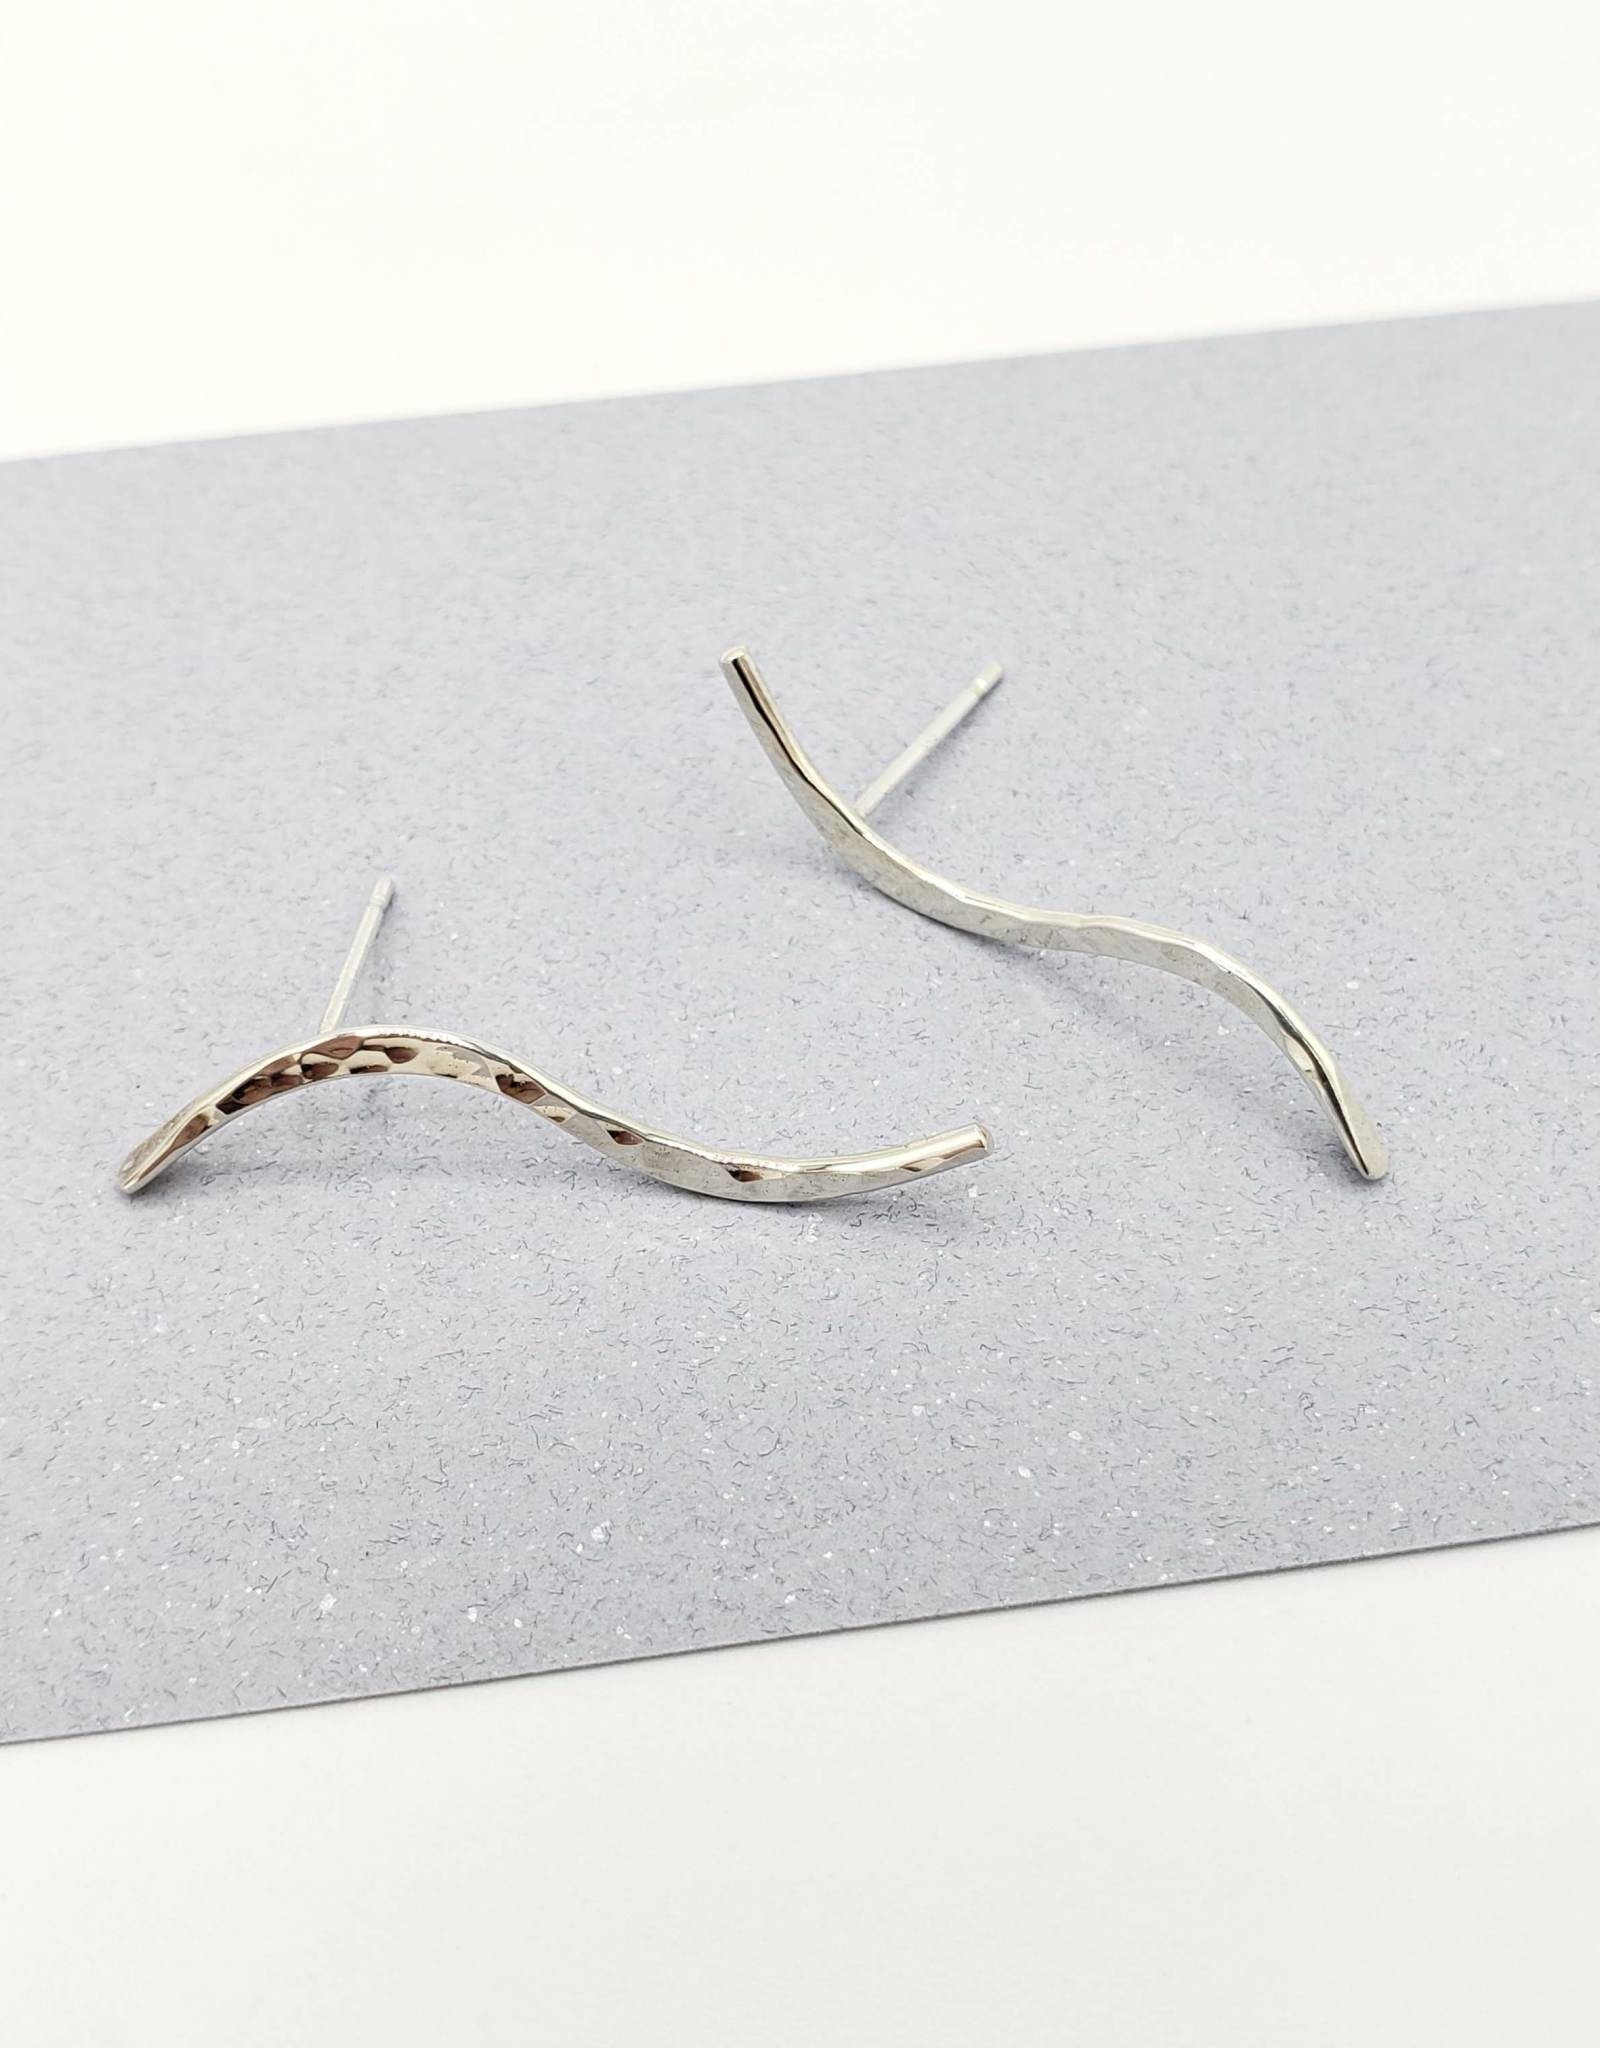 Peter James Jewelry Curved Bar Stud Earrings in Sterling Silver